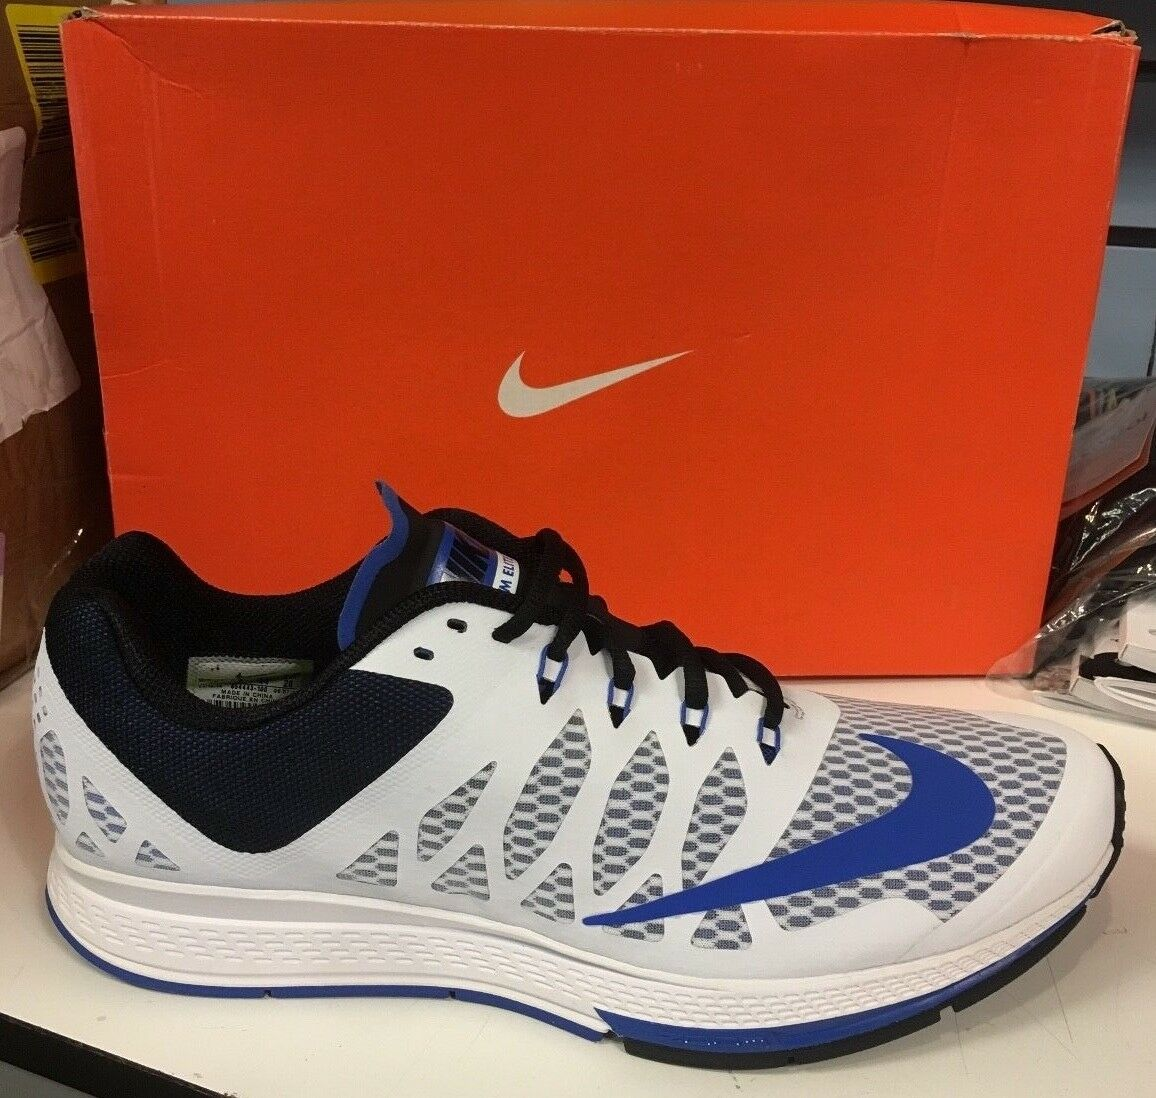 The most popular shoes for men and women MENS NIKE ZOOM ELITE 7 654443 100 MENS 8.5